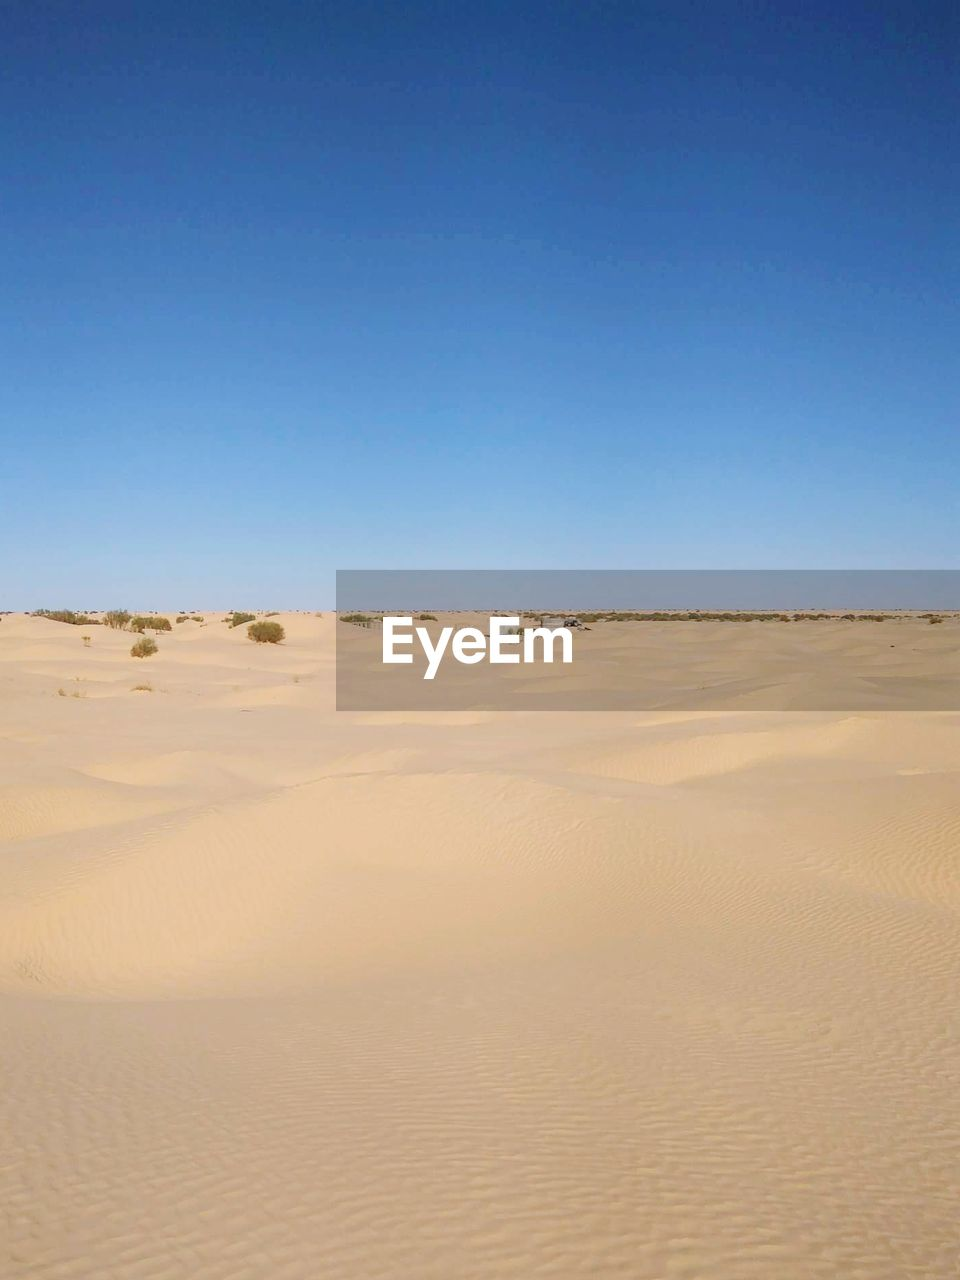 sand, land, scenics - nature, sky, desert, landscape, tranquility, tranquil scene, copy space, environment, clear sky, blue, climate, beauty in nature, arid climate, nature, sand dune, day, non-urban scene, no people, outdoors, atmospheric